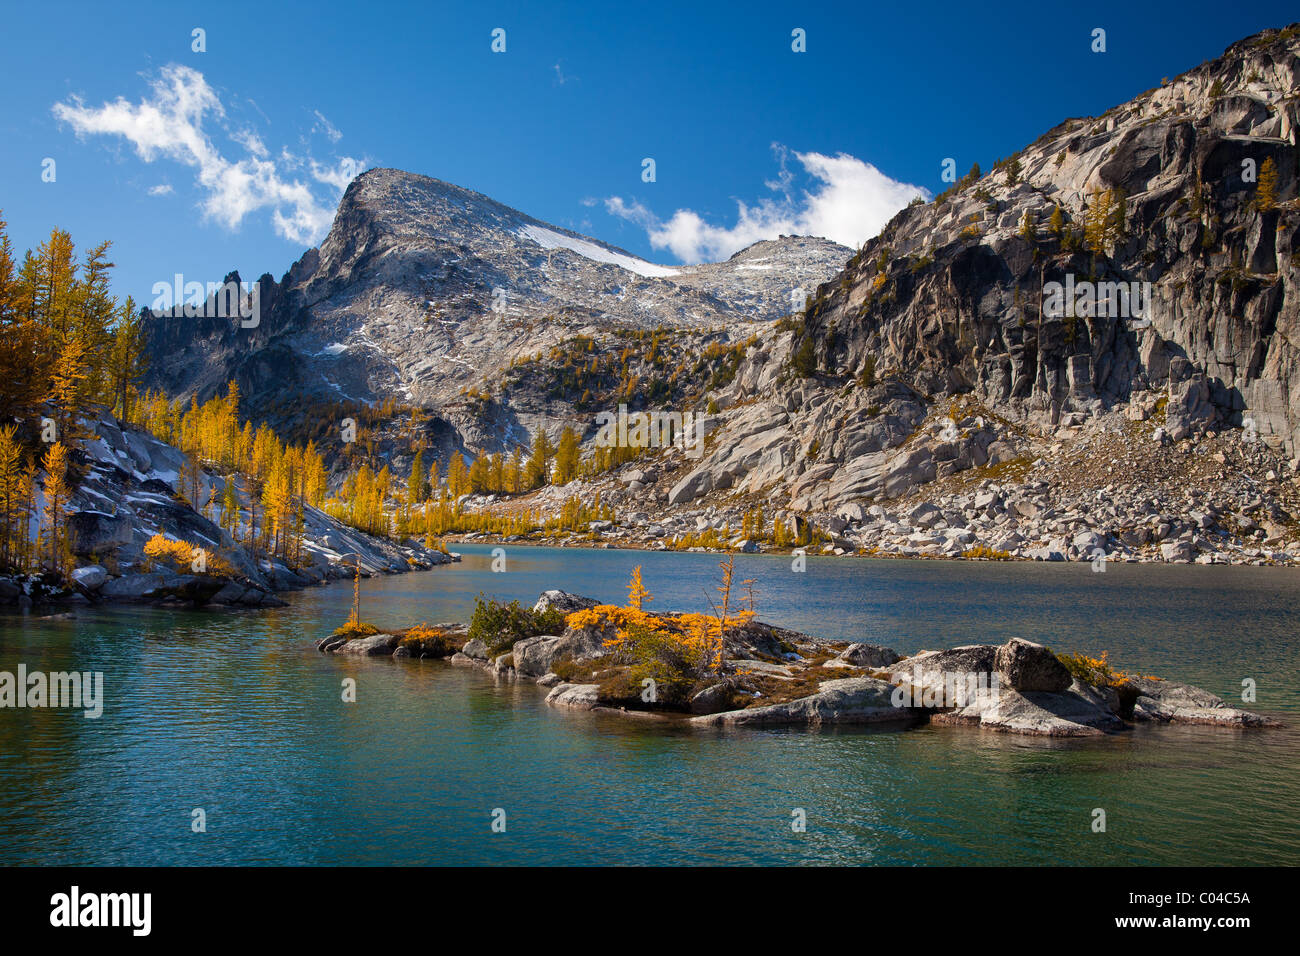 Larch trees at Perfection Lake in the Enchantment Lakes wilderness in Washington state, USA Stock Photo